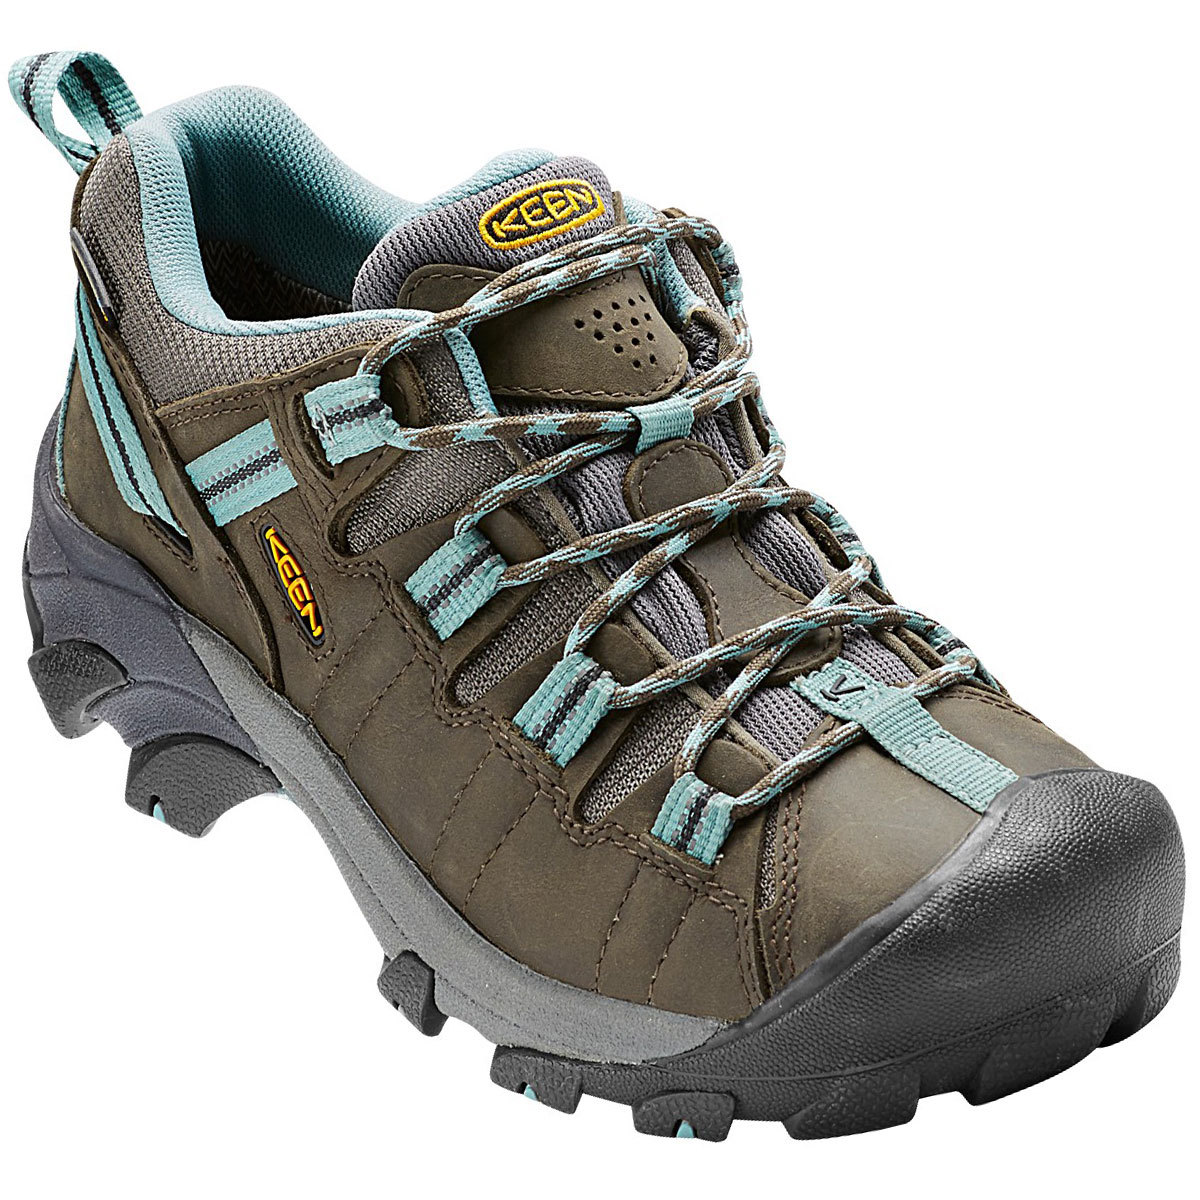 Keen Women's Targhee Ii Waterproof Hiking Shoes, Black Olive/mineral Blue